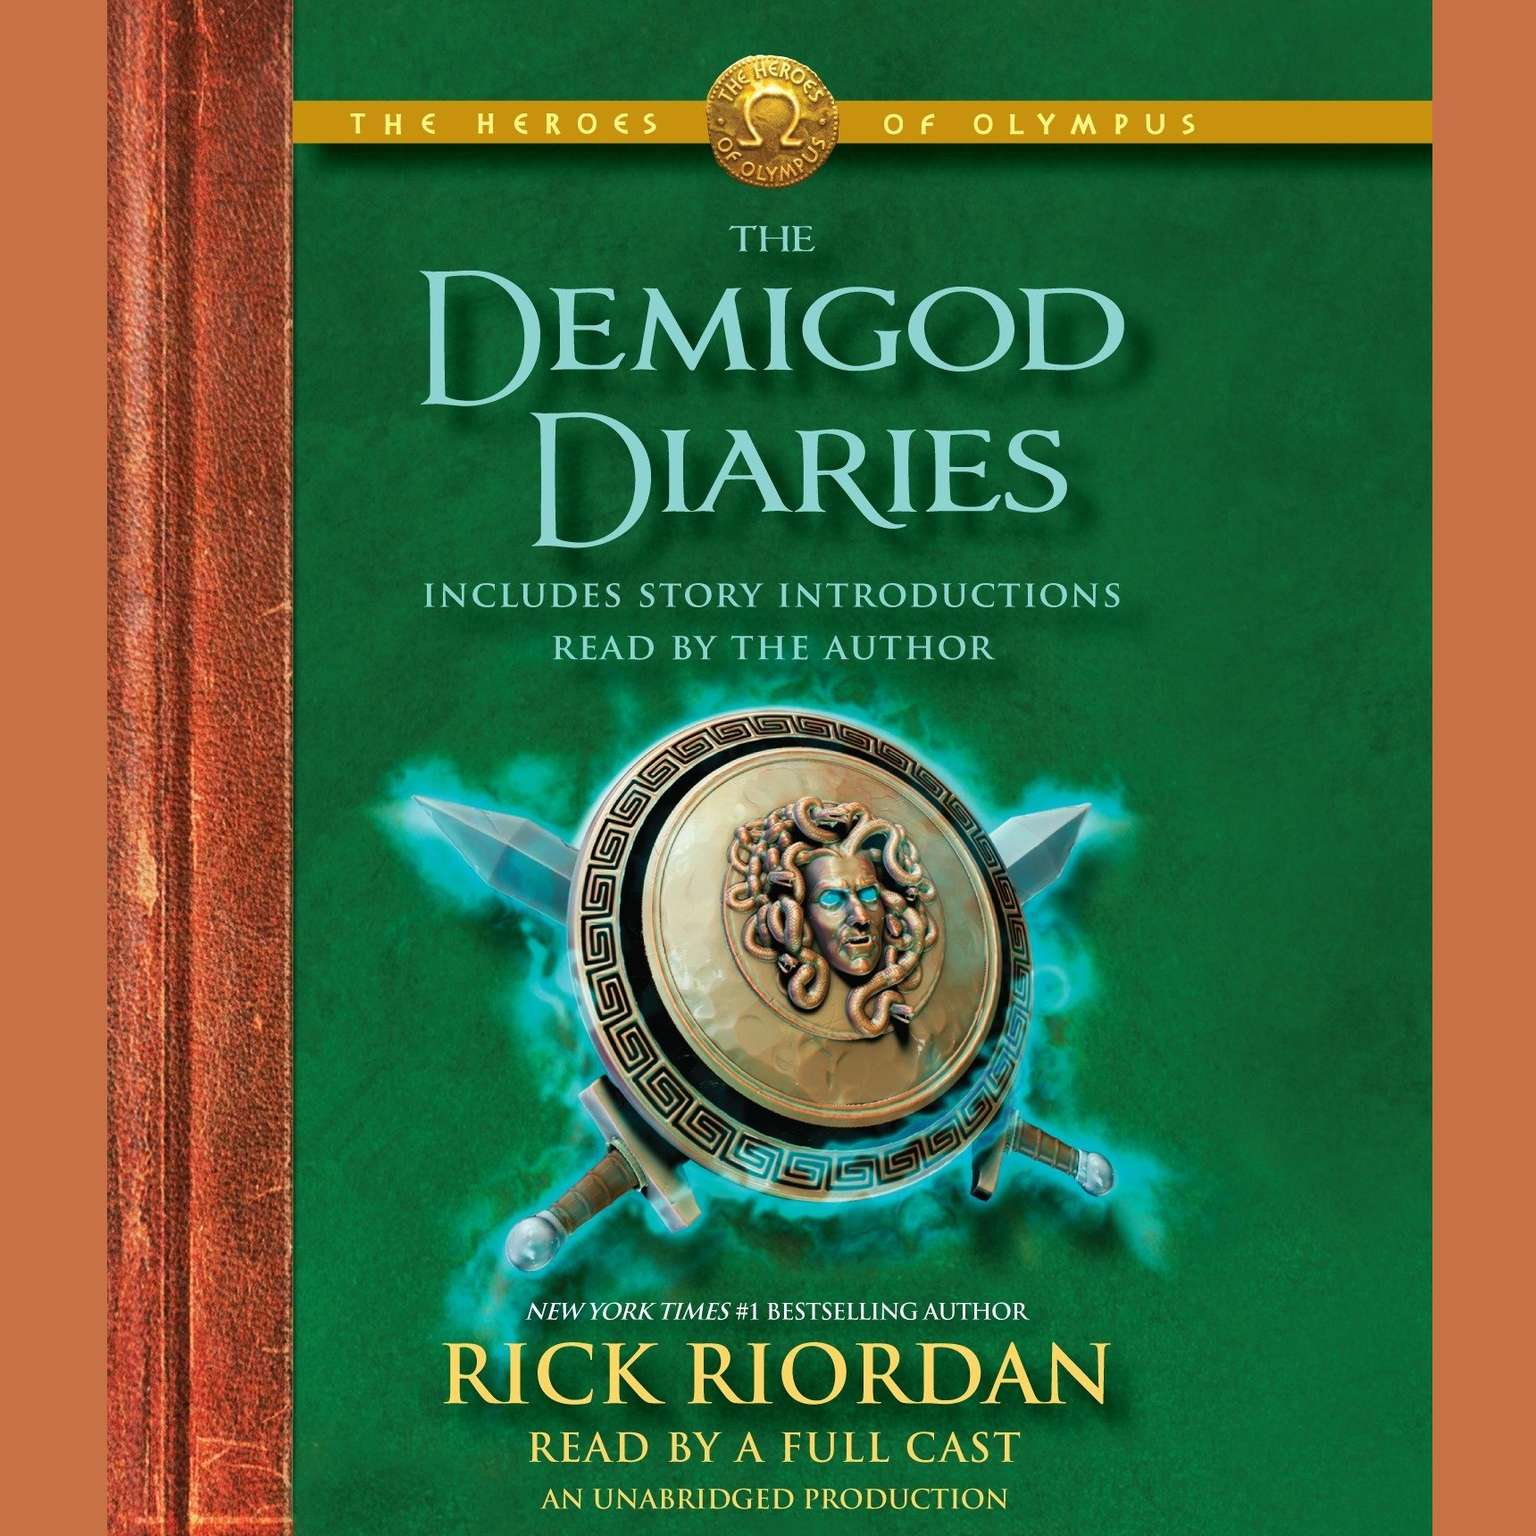 Printable The Heroes of Olympus: The Demigod Diaries Audiobook Cover Art